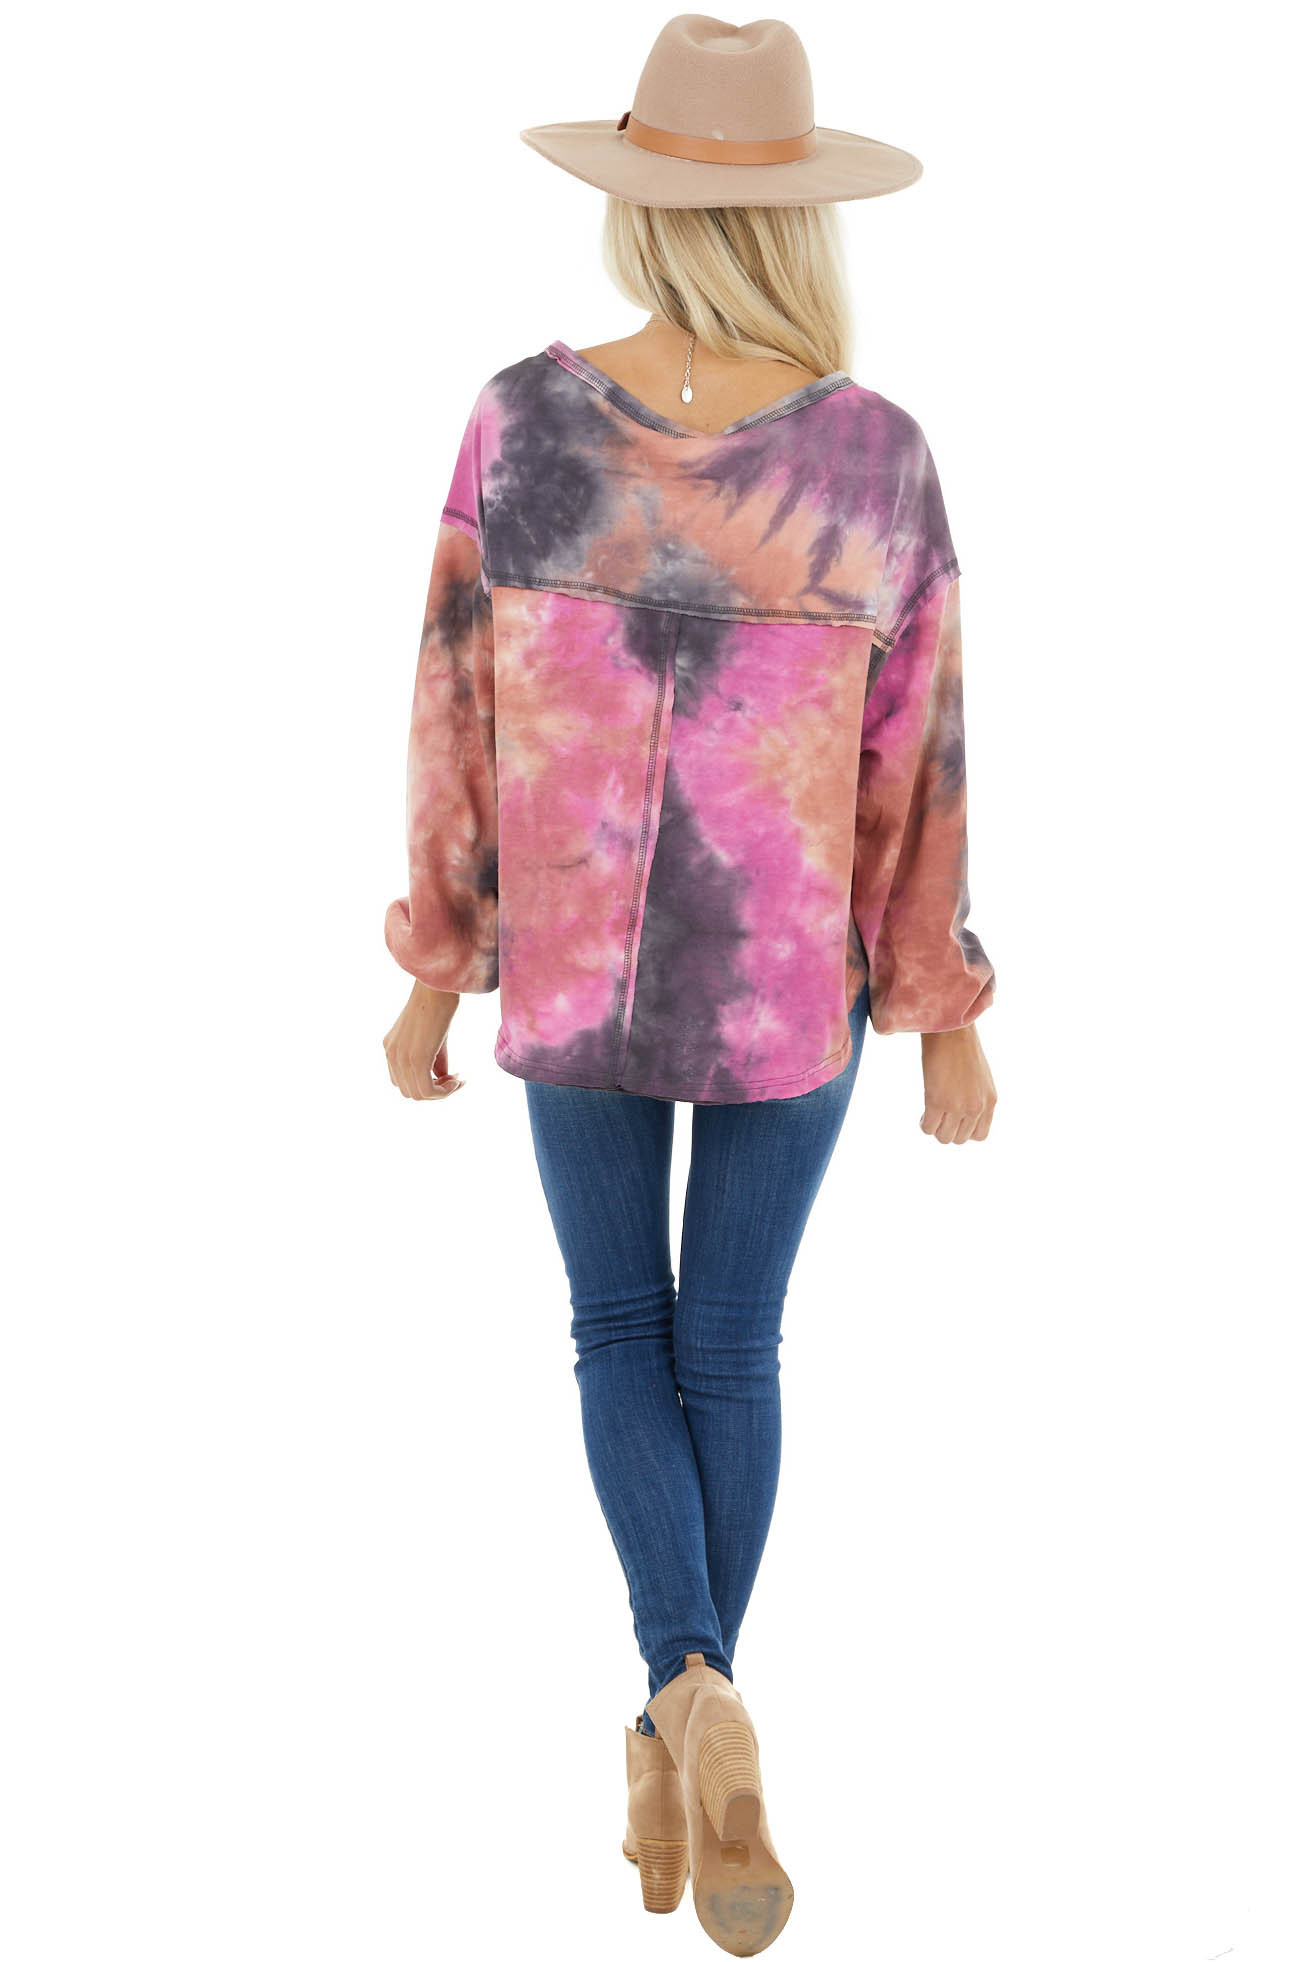 Charcoal Tie Dye Long Sleeve Knit Top with Stitching Detail